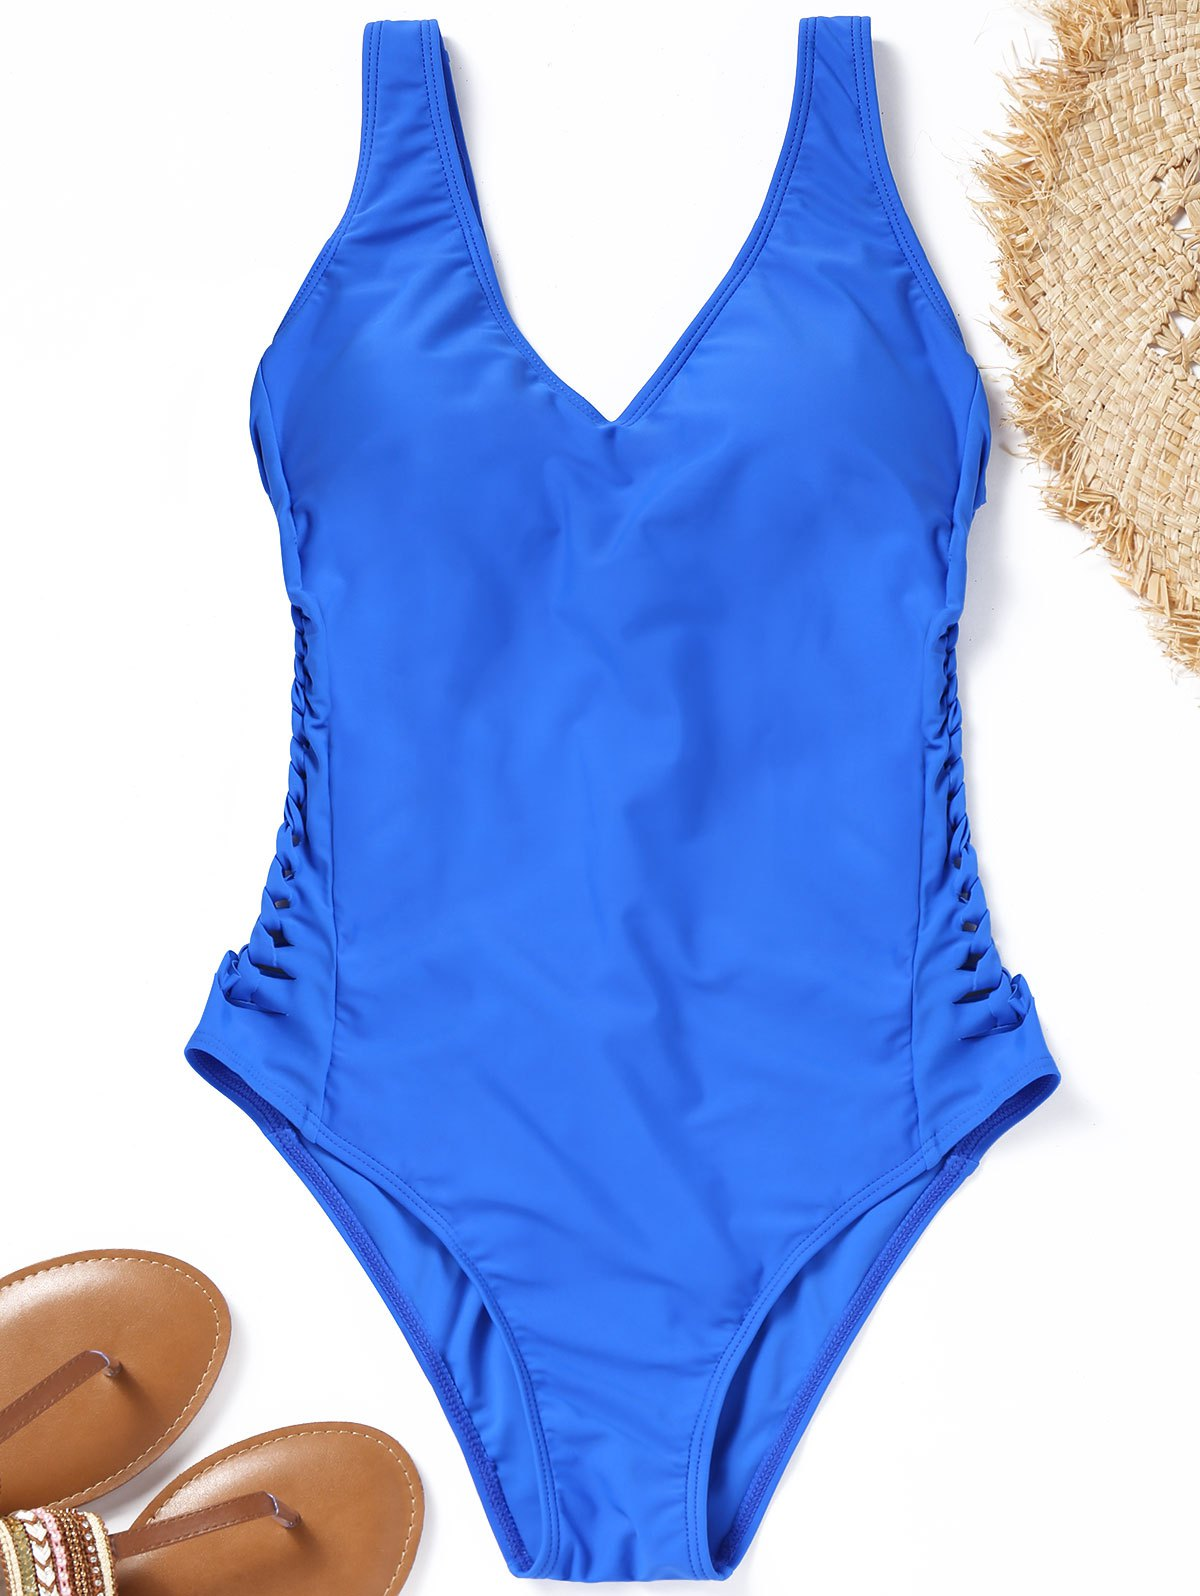 Caged Cut One Piece Swimsuit caged back swimsuit